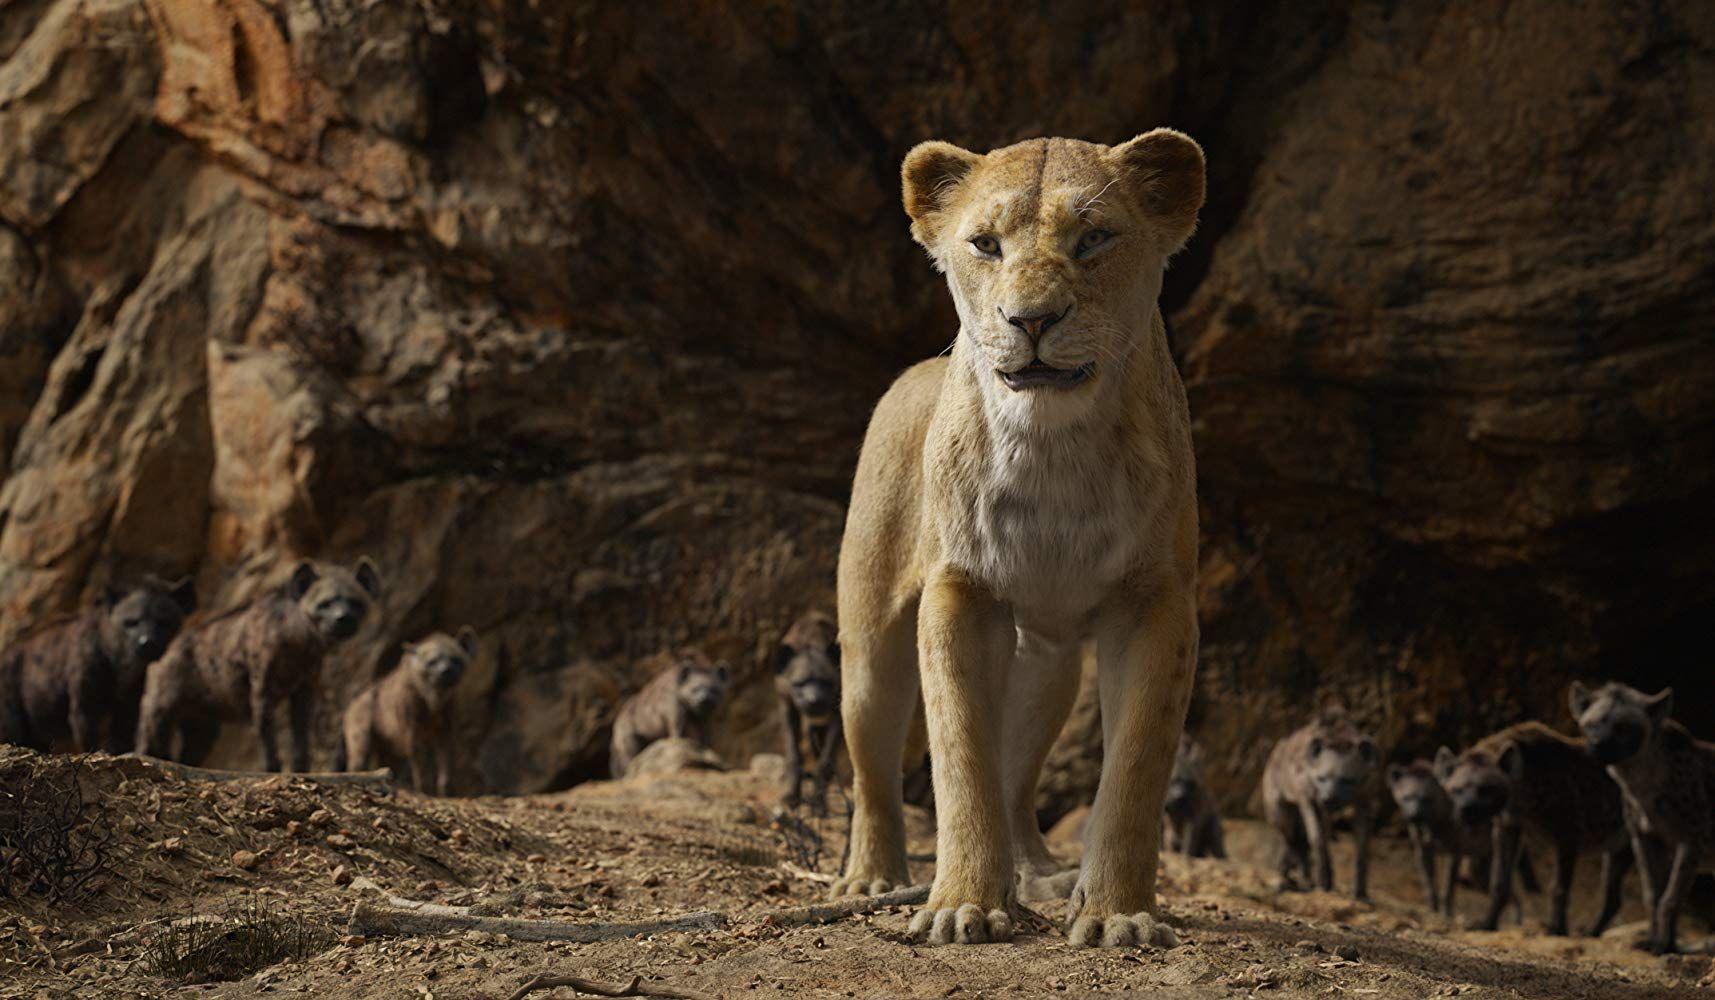 123movies Watch The Lion King 2019 Online 2019 Movie